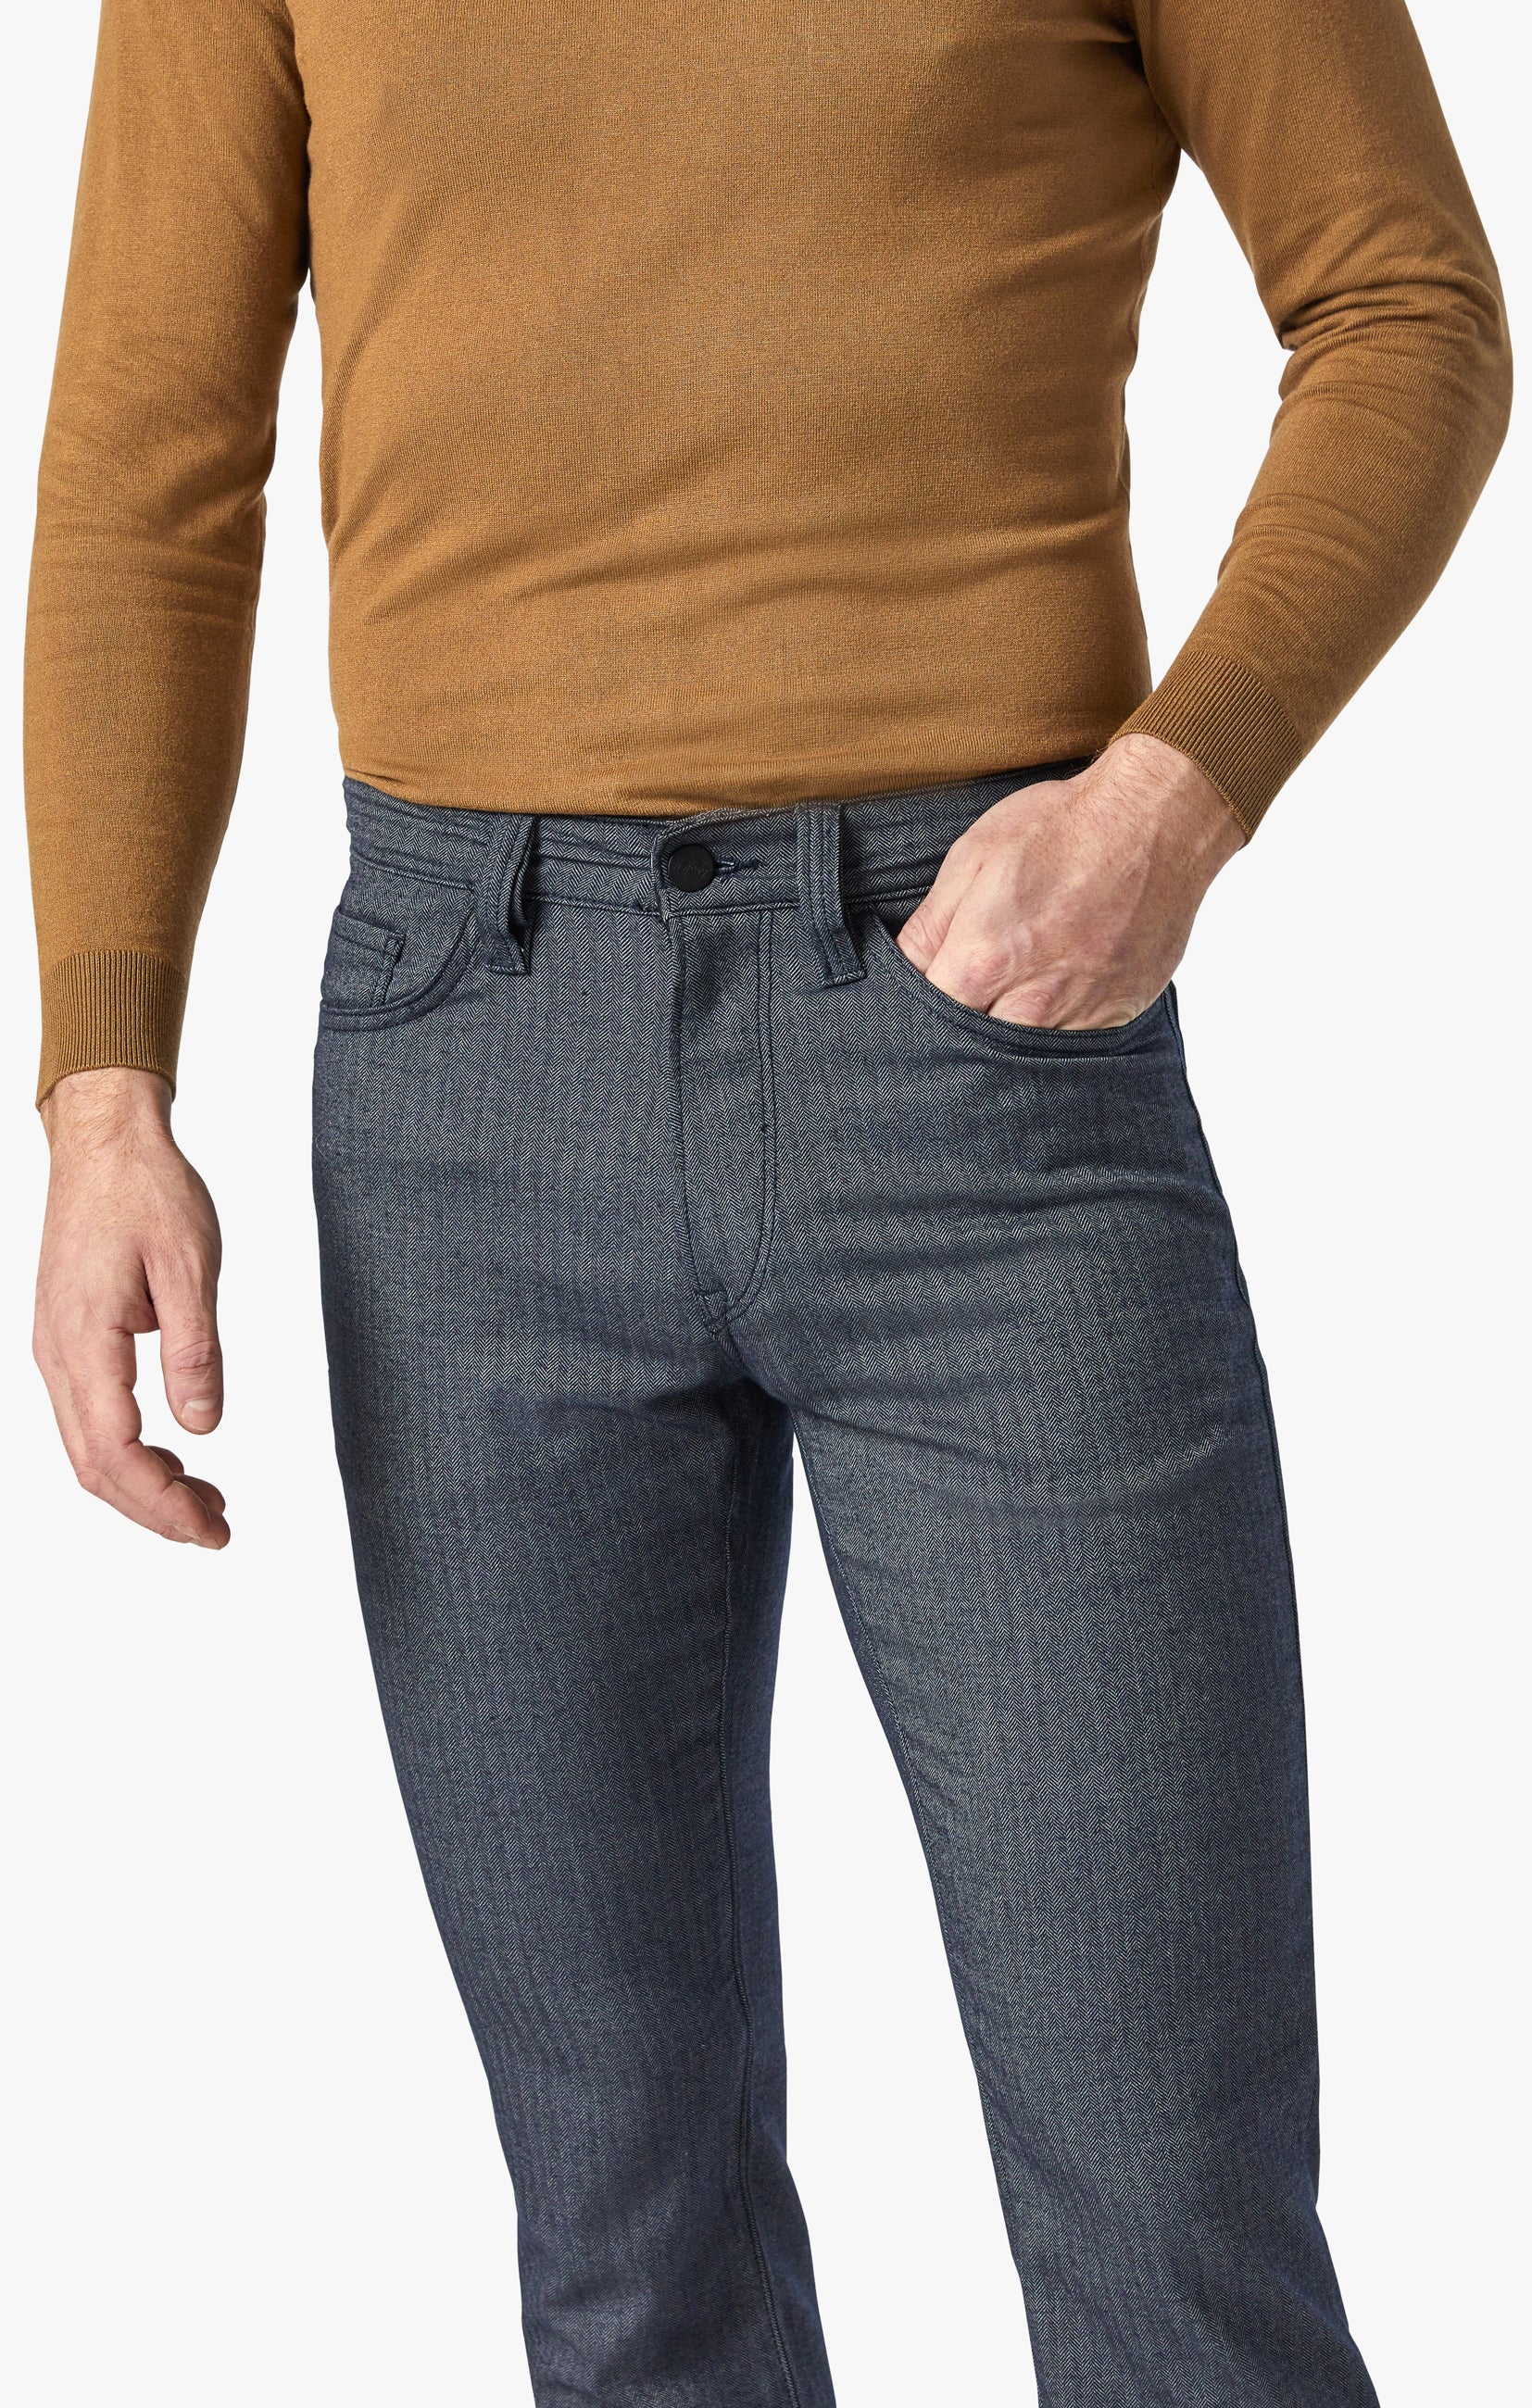 Charisma Relaxed Straight Pants in Navy Herringbone Image 4